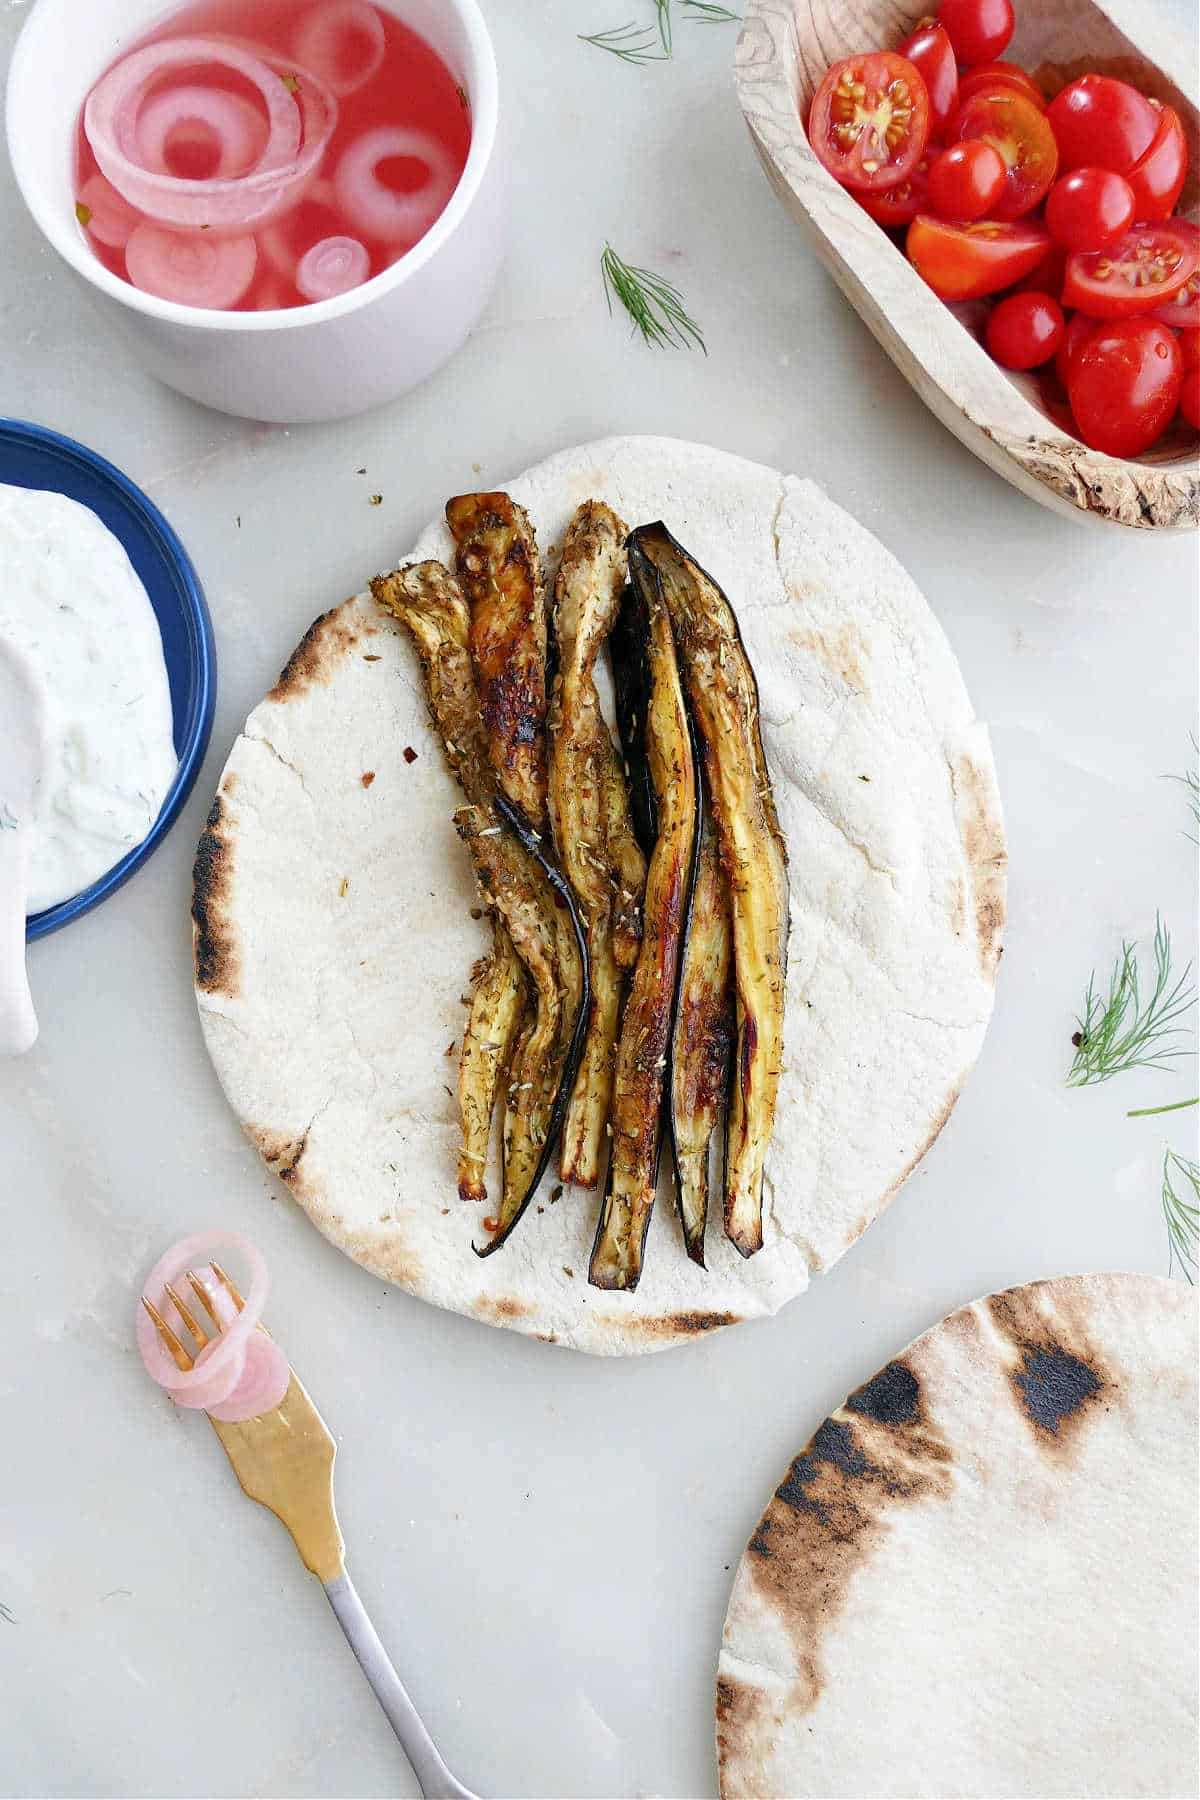 roasted eggplant strips placed in the center of pita bread next to other ingredients